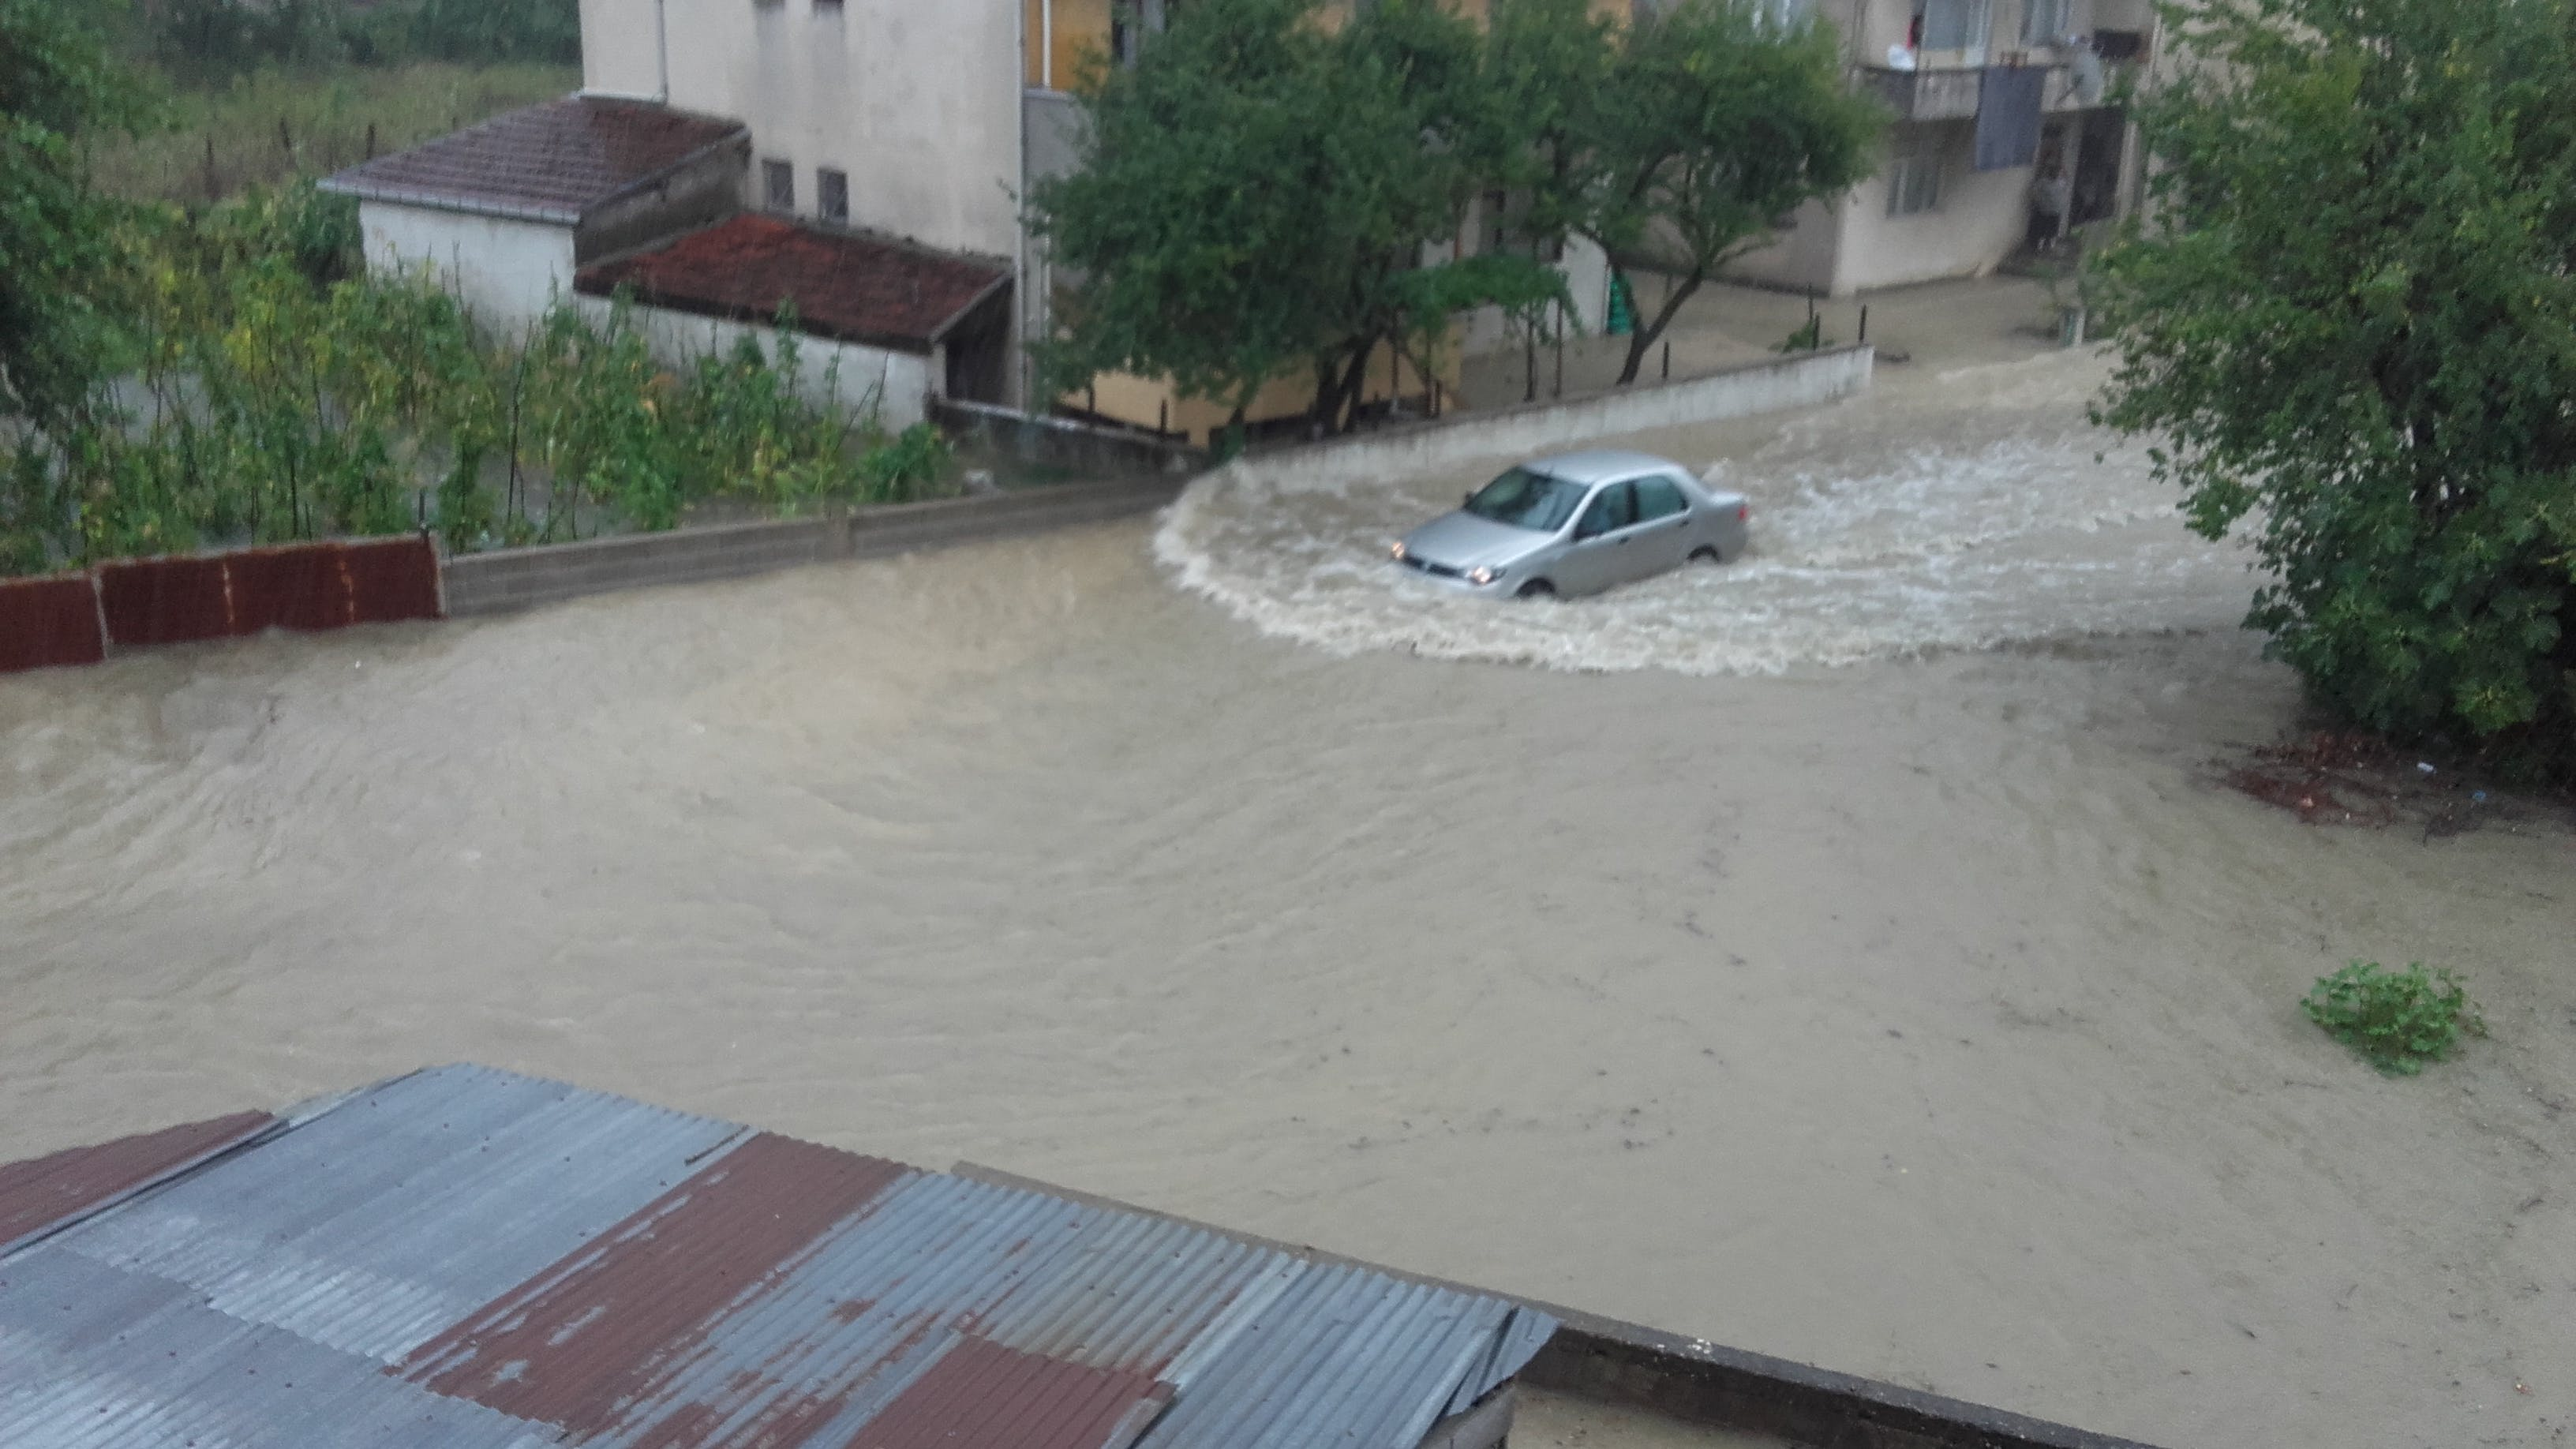 Free stock photo of flood and car